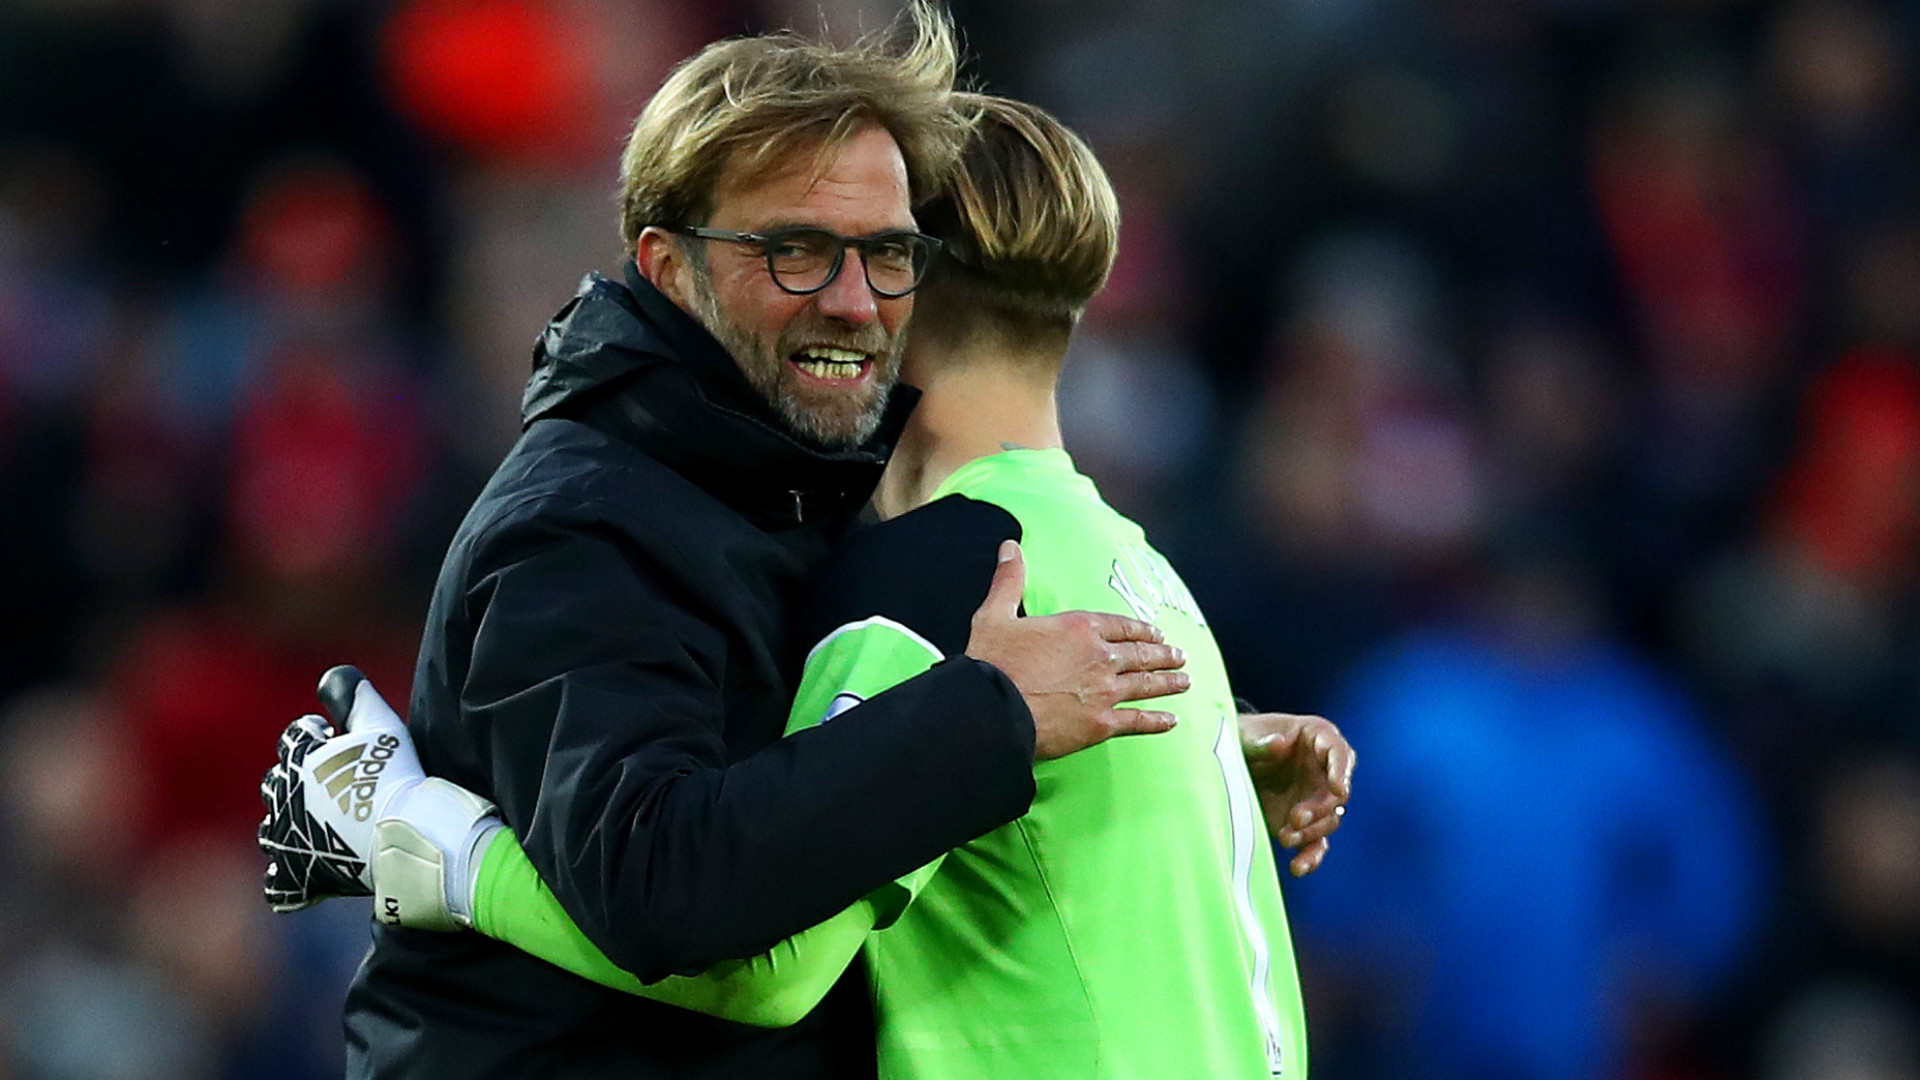 Klopp Is Right To Stick With Karius, Liverpool's